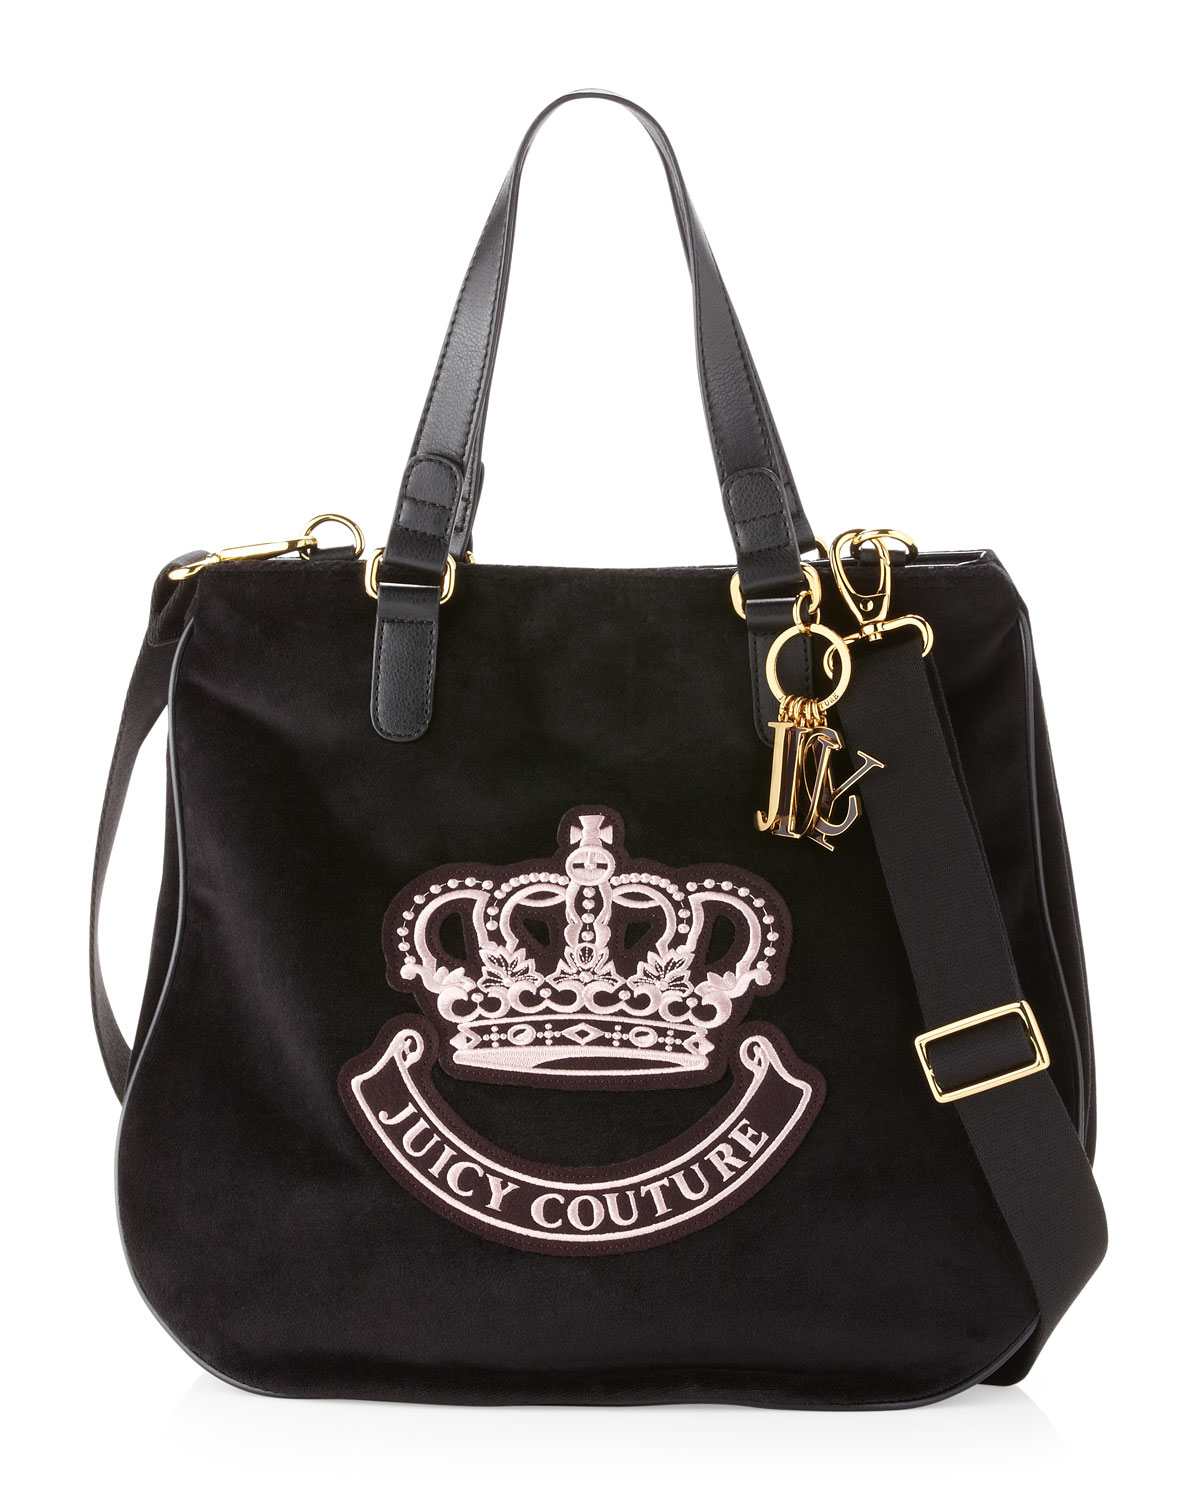 juicy couture victoria velour tote bag black in black lyst. Black Bedroom Furniture Sets. Home Design Ideas